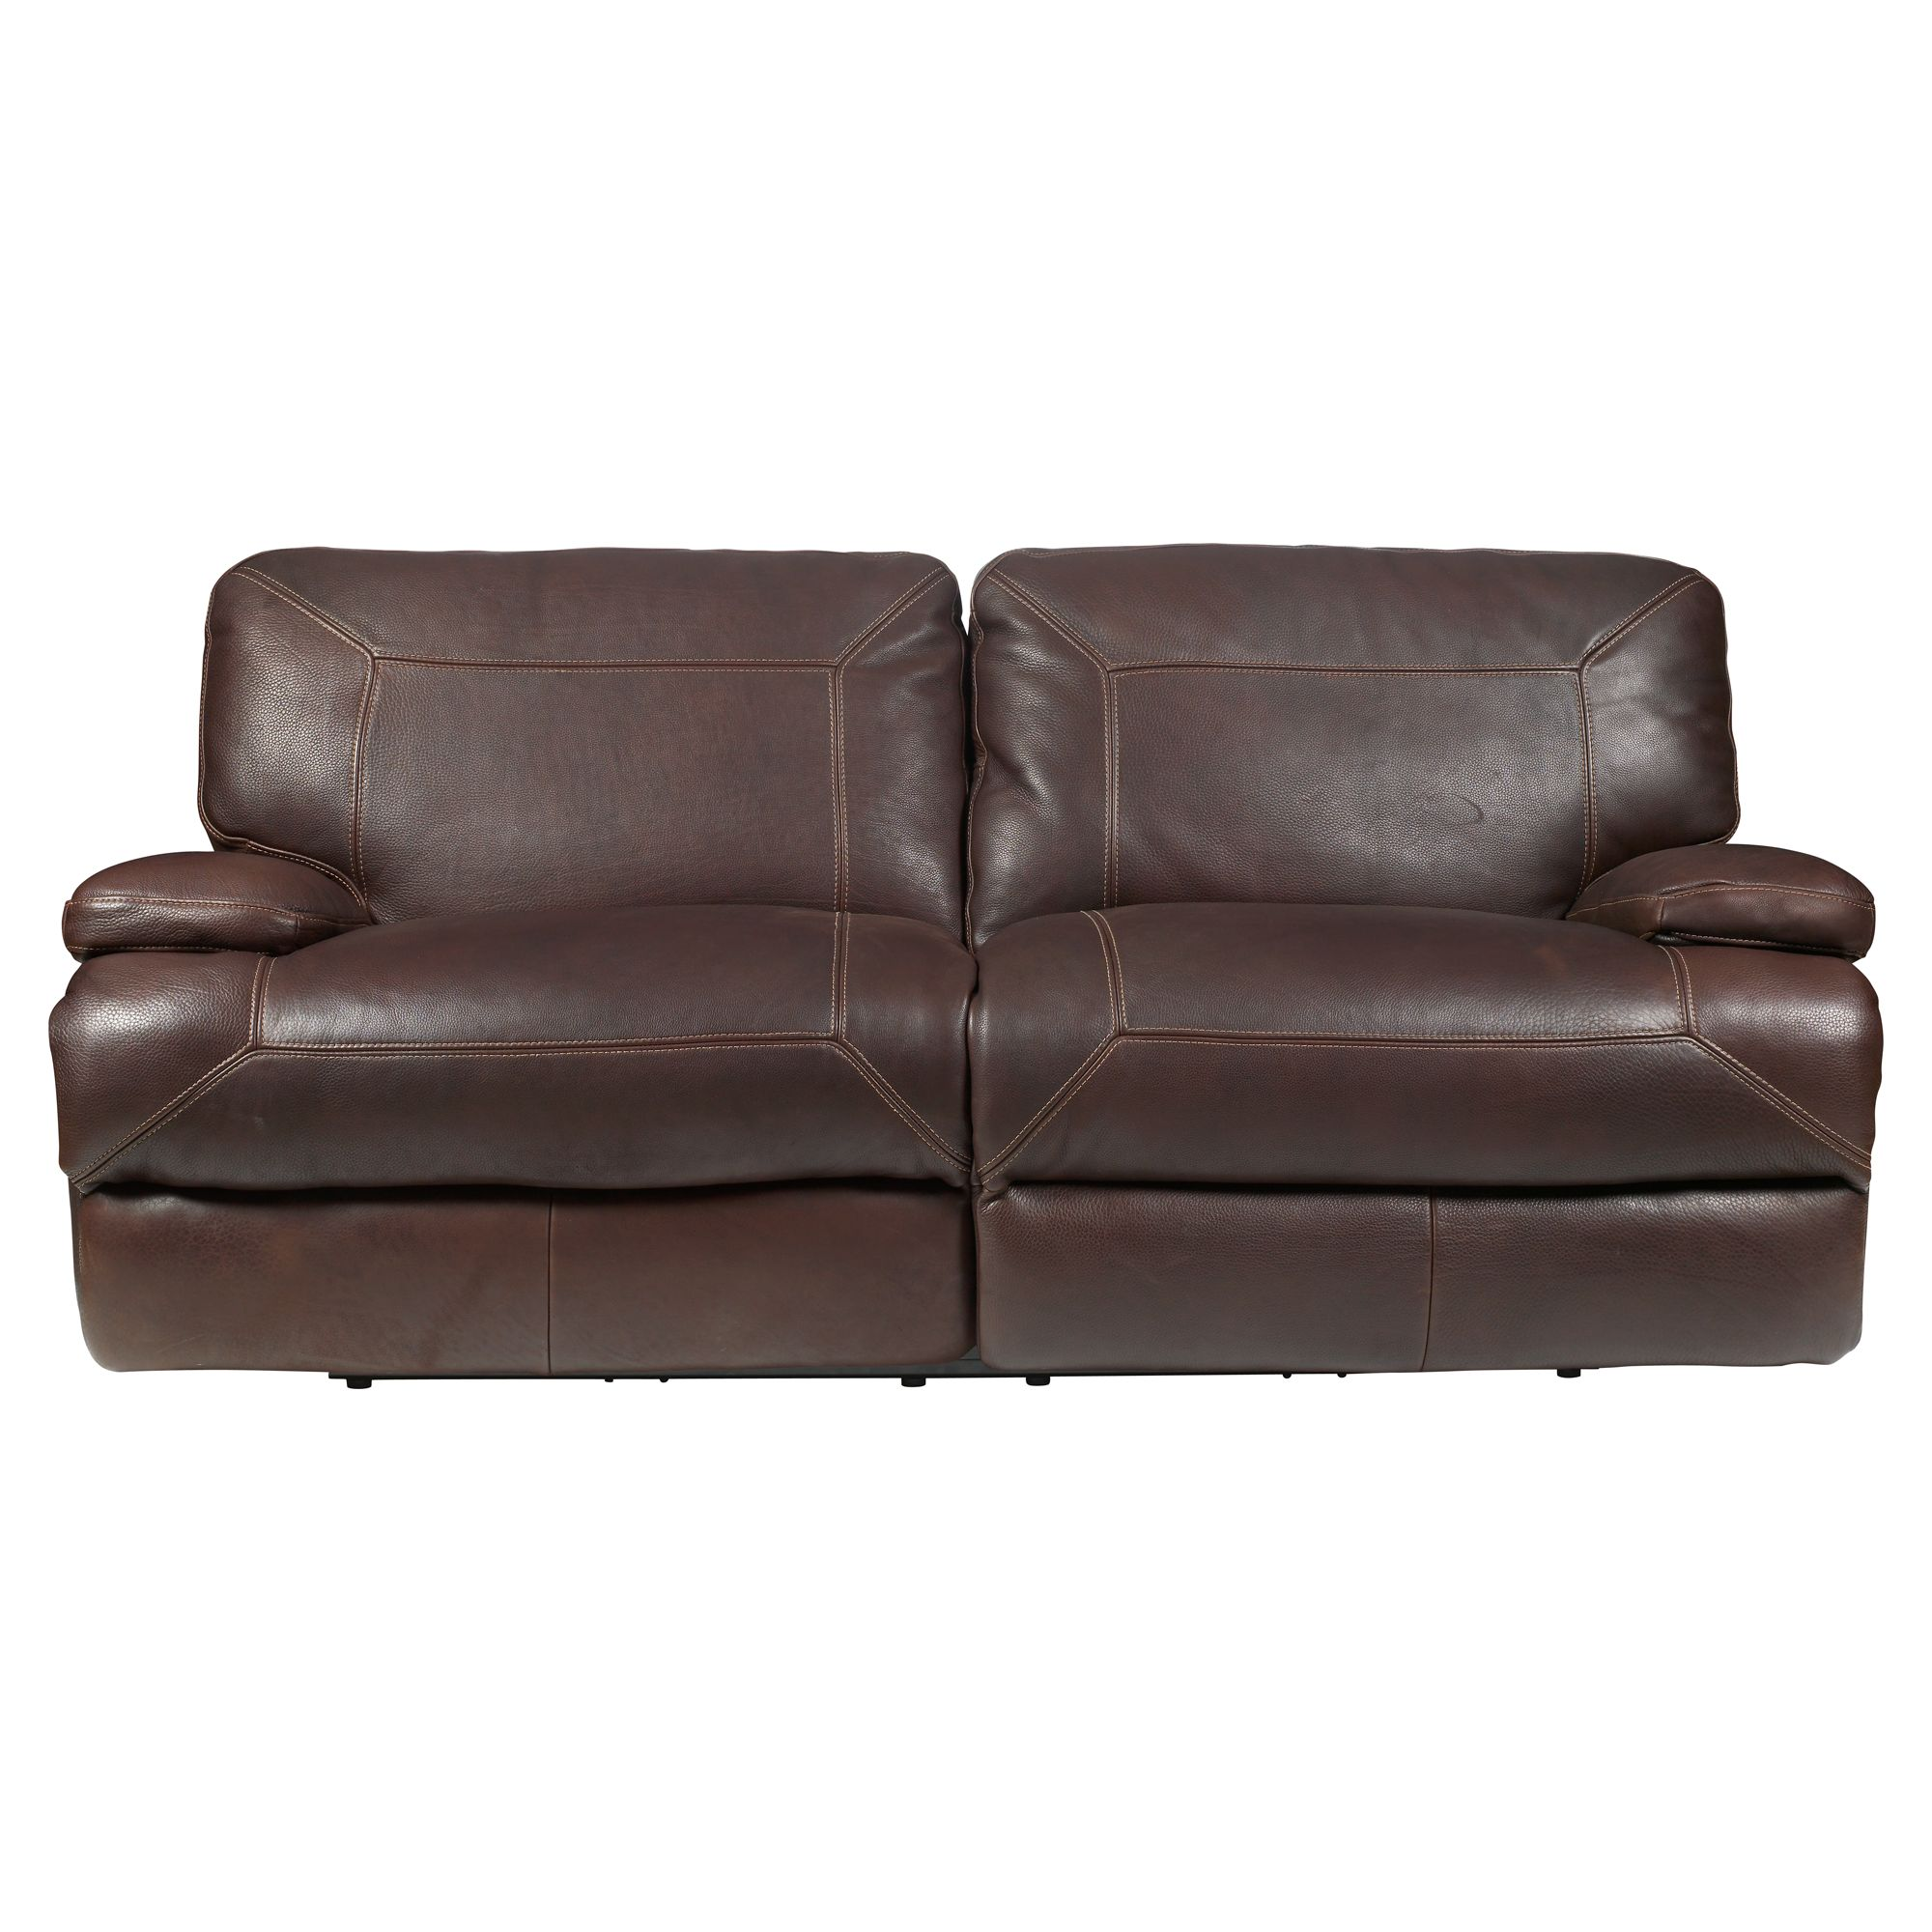 Sectional sofas cheap prices cheap sectionals sofas with Discount designer sofas